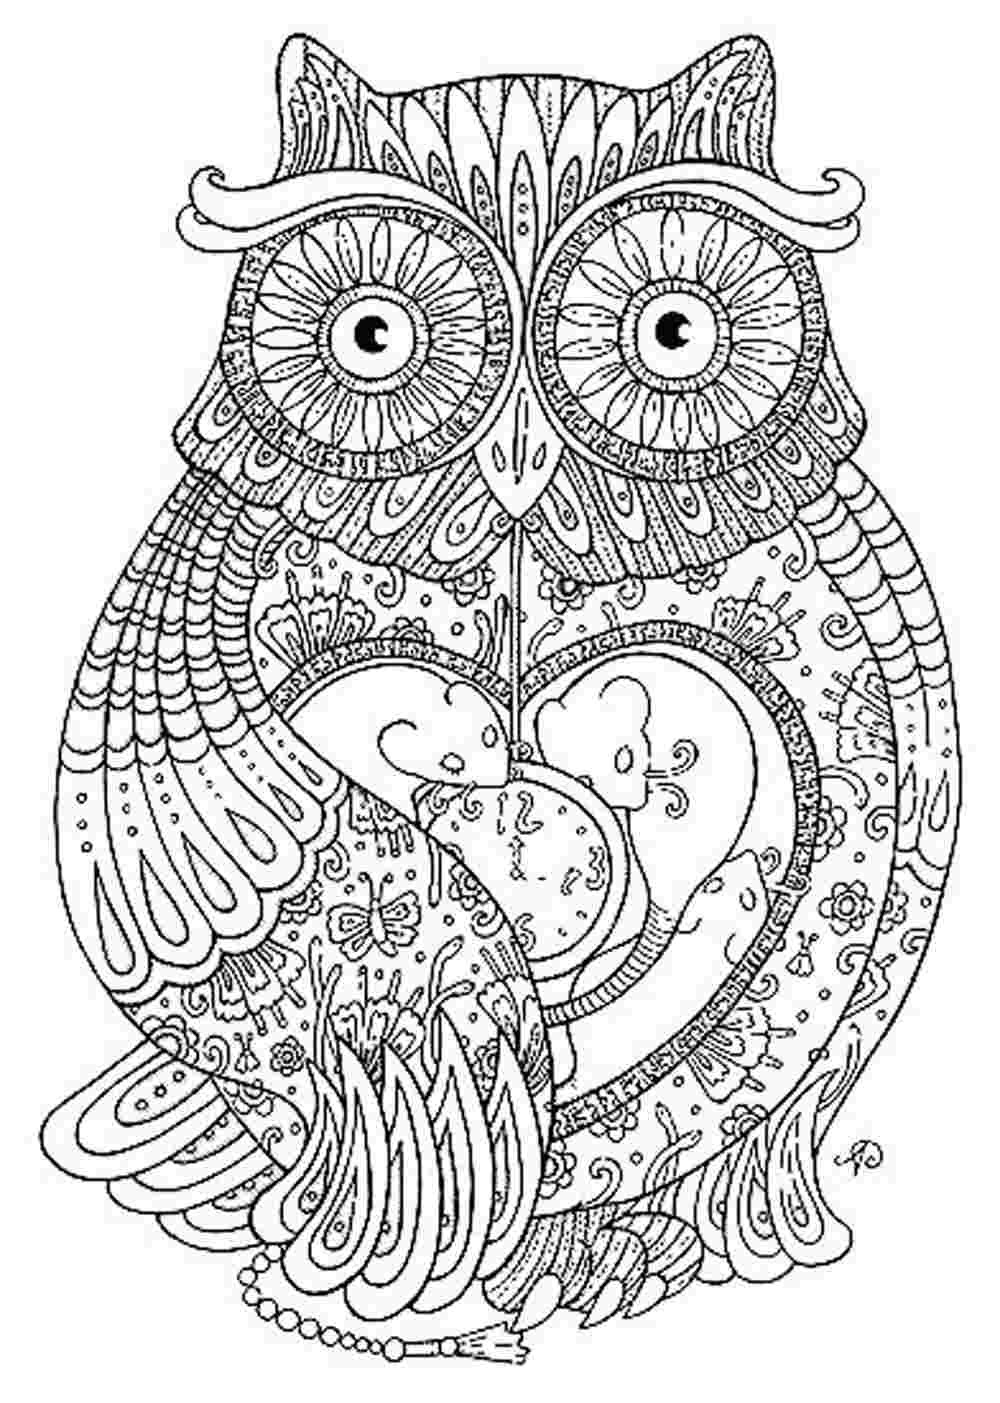 Best ideas about Adult Coloring Books . Save or Pin Adult Coloring Page Coloring Home Now.